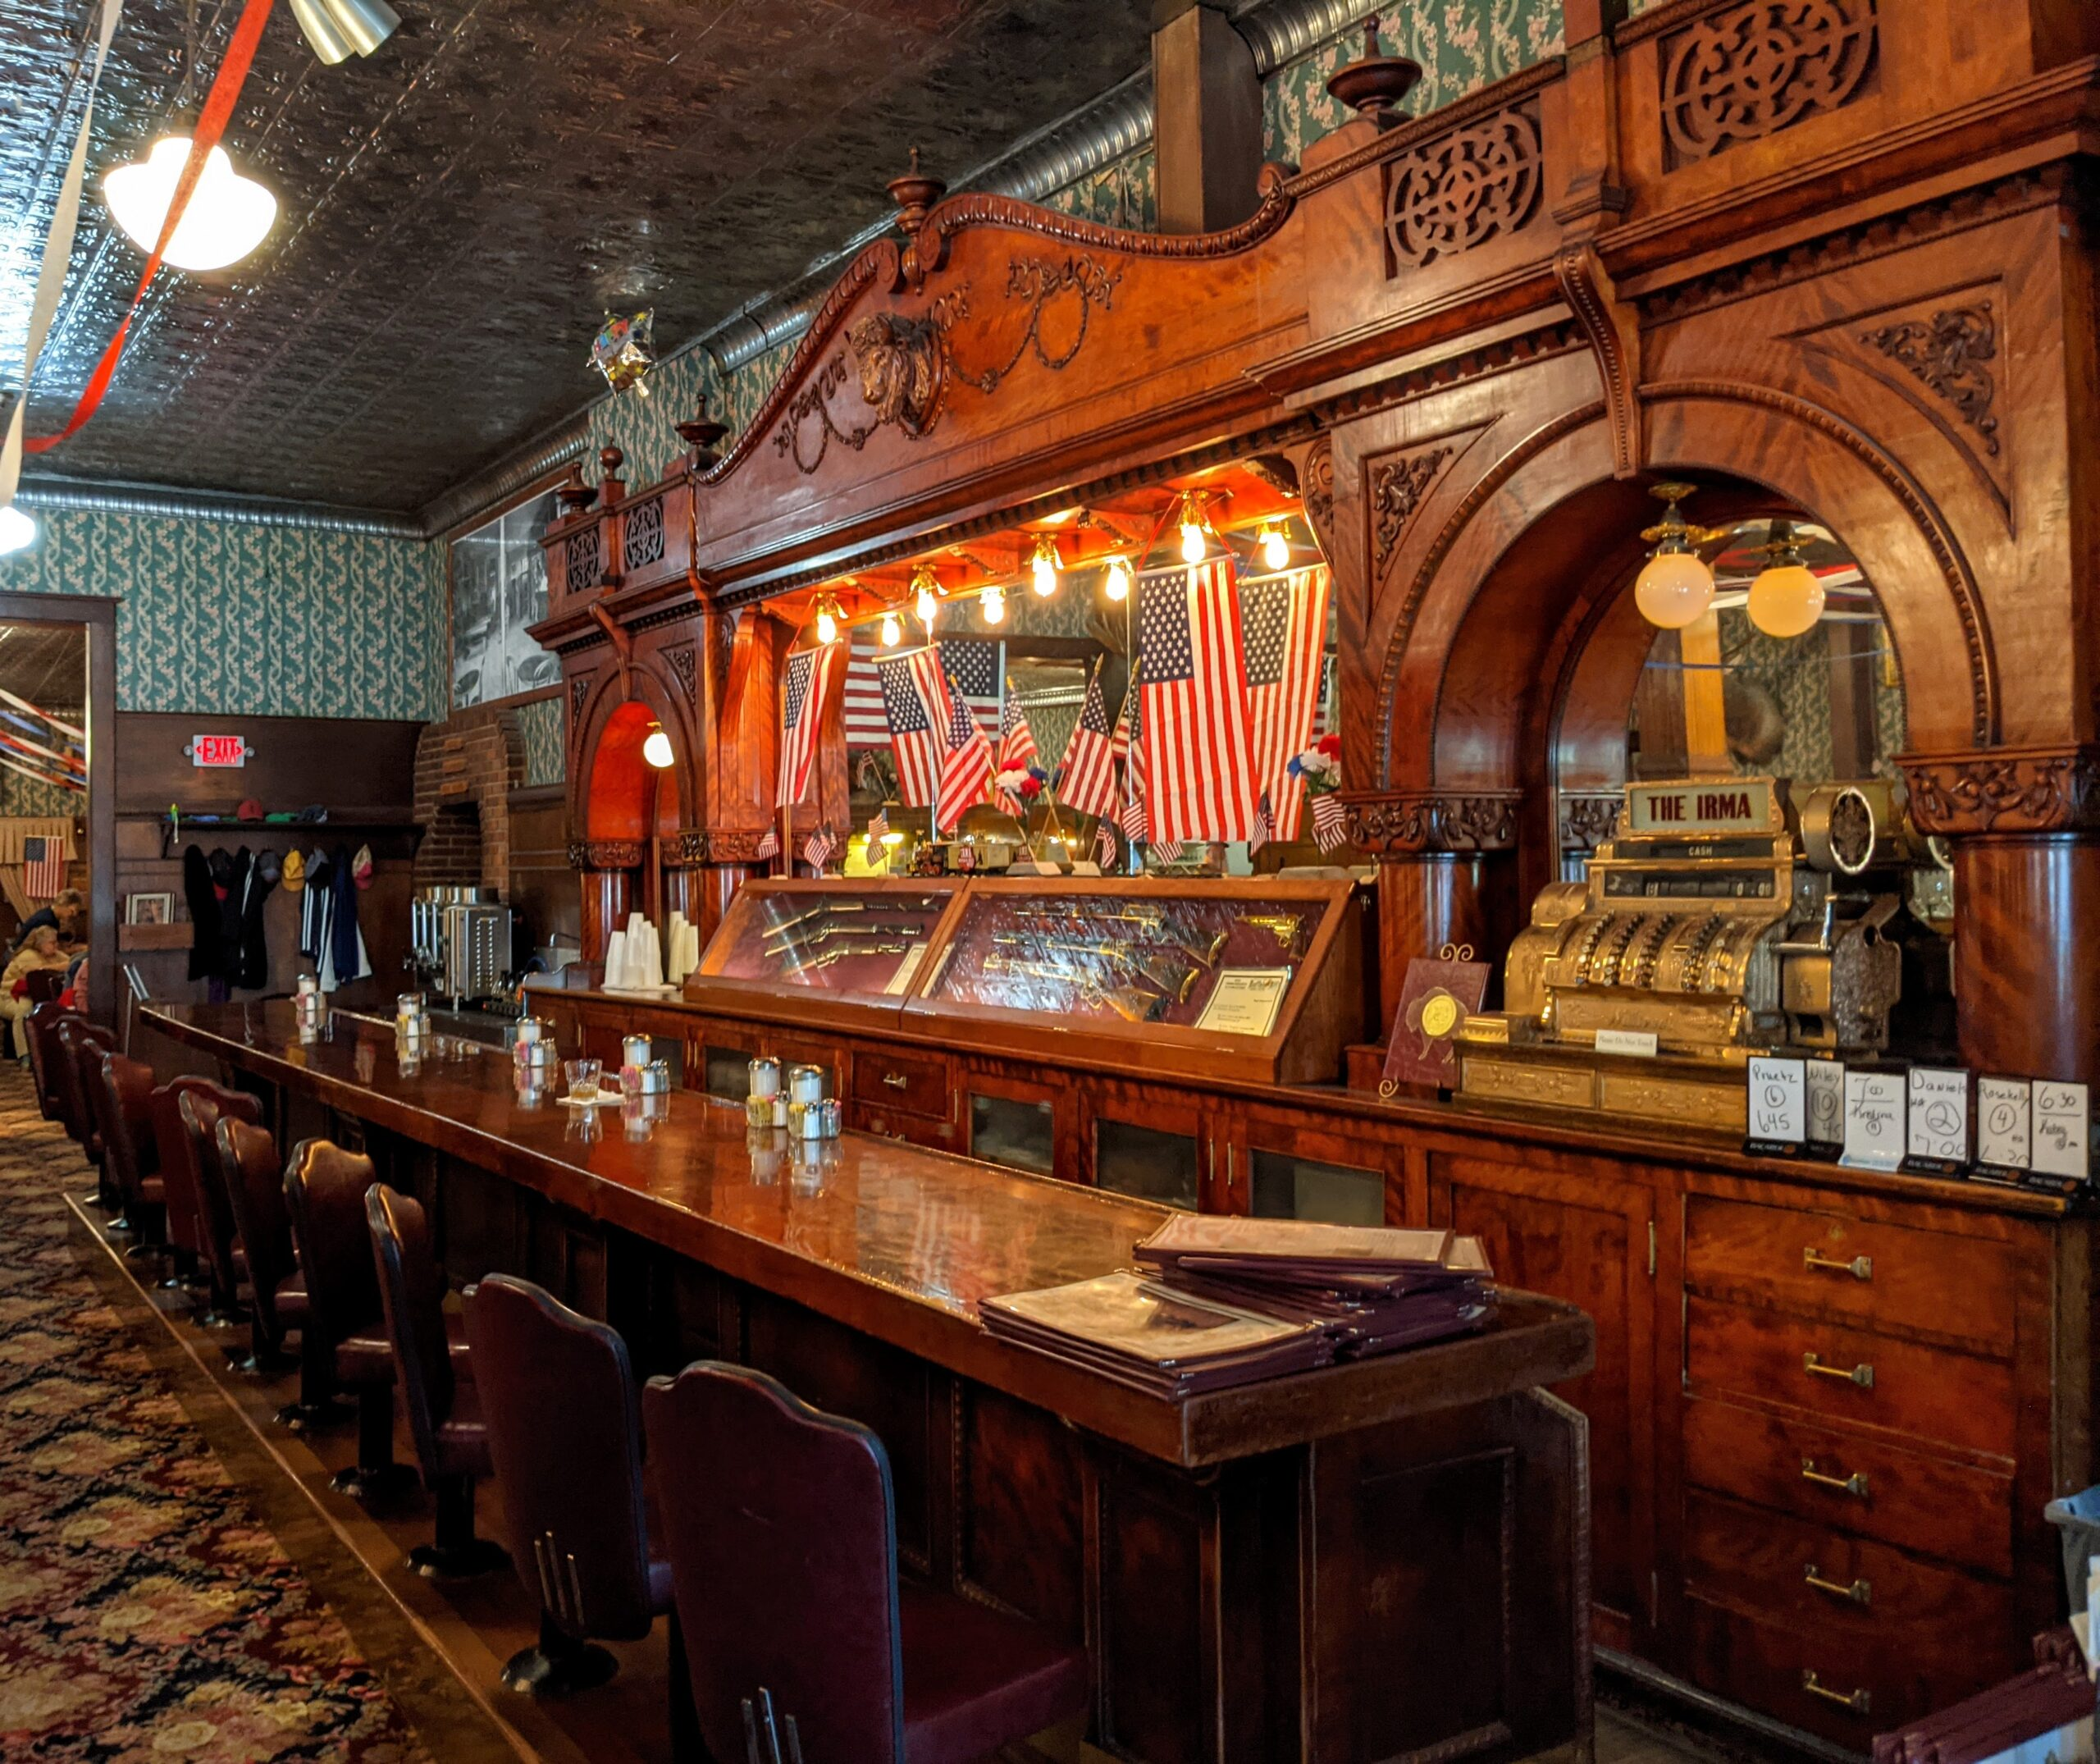 The bar at The Irma Hotel in Cody Wyoming